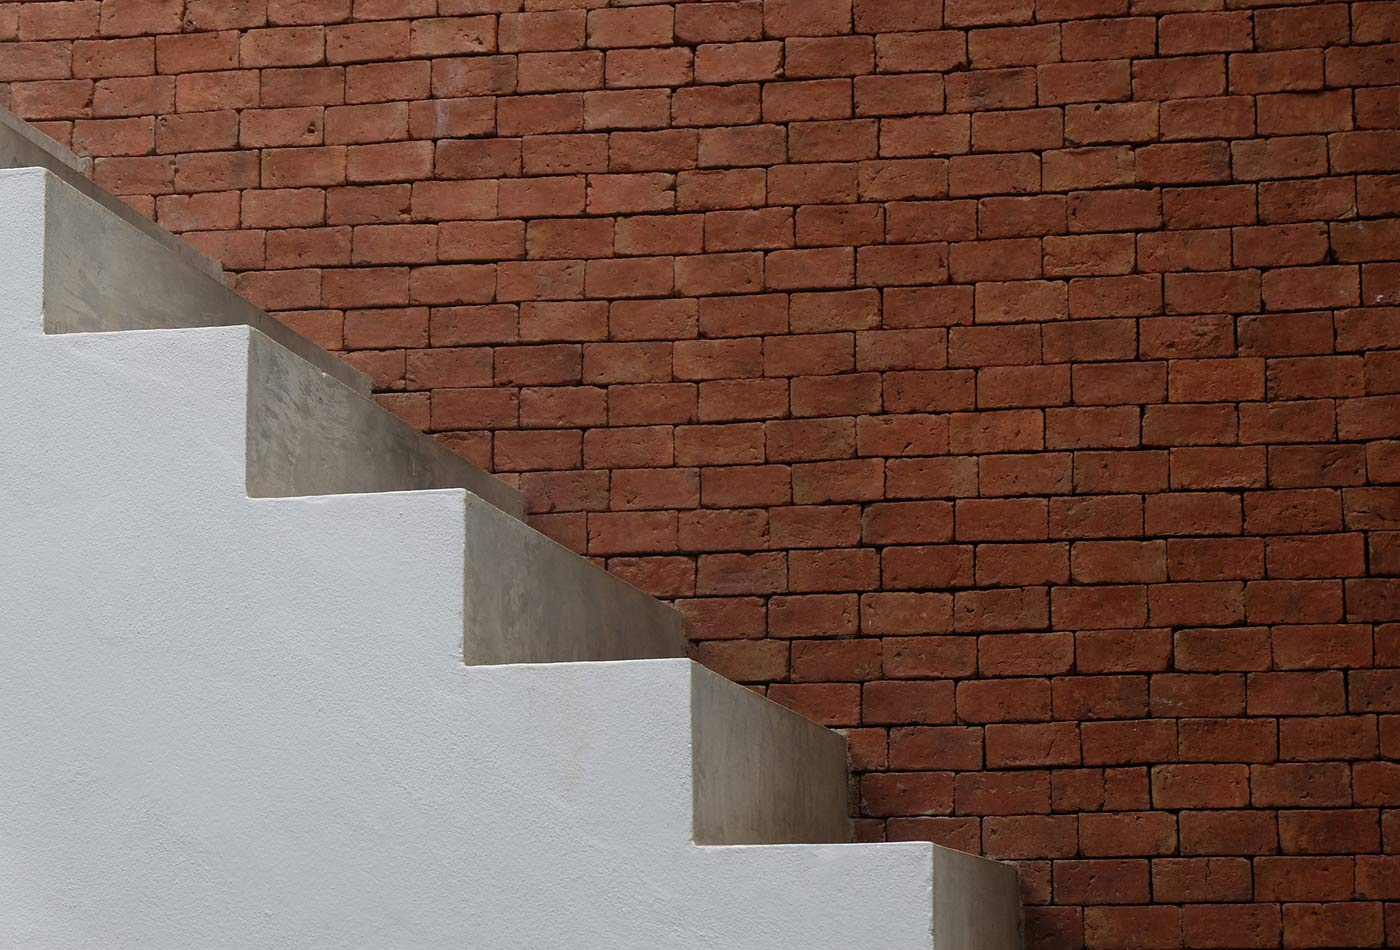 Stairs and brick wall